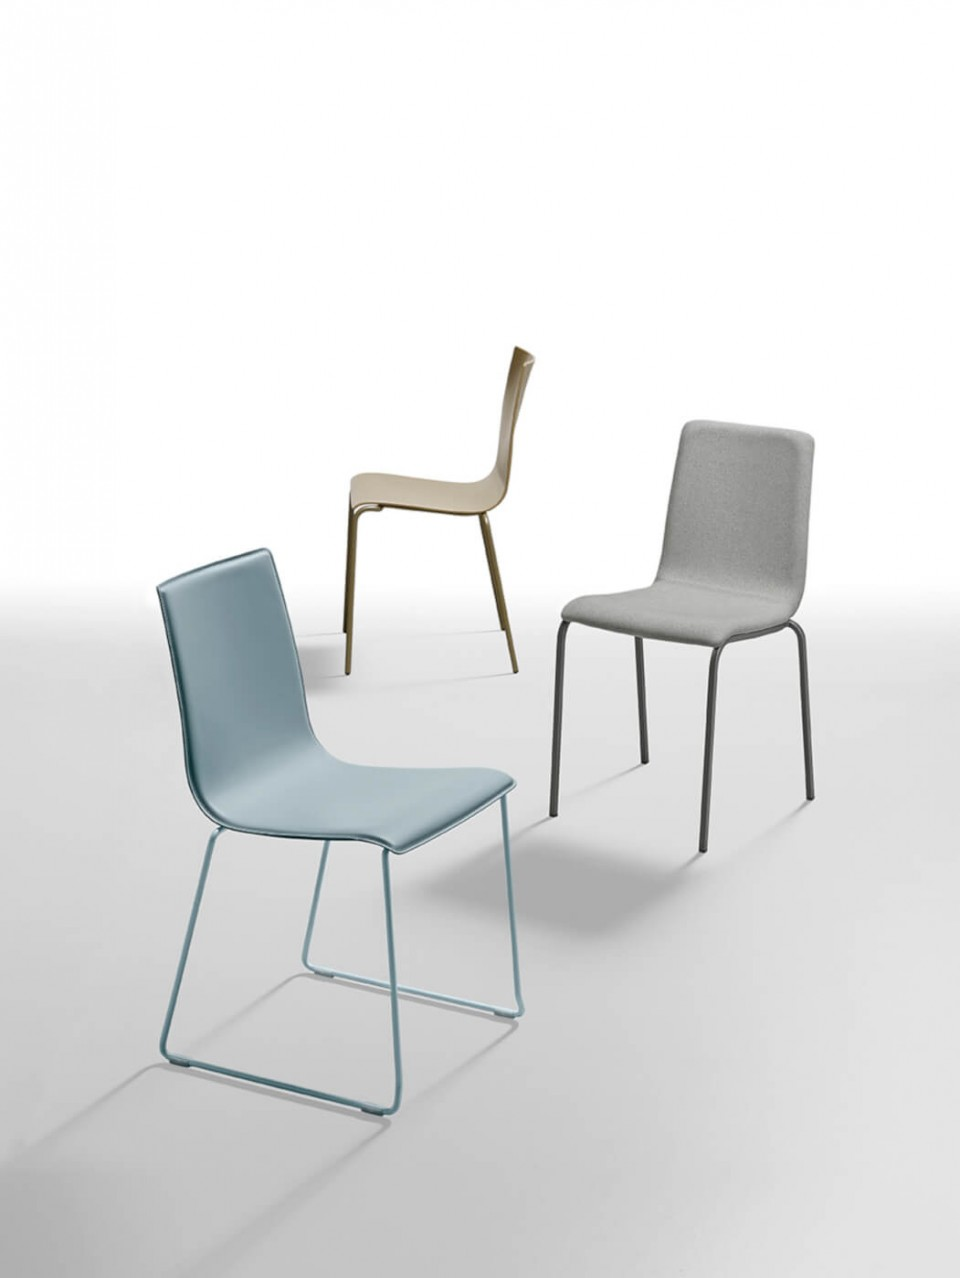 Passepartout chair with beige metal frame and beige Restylon seat